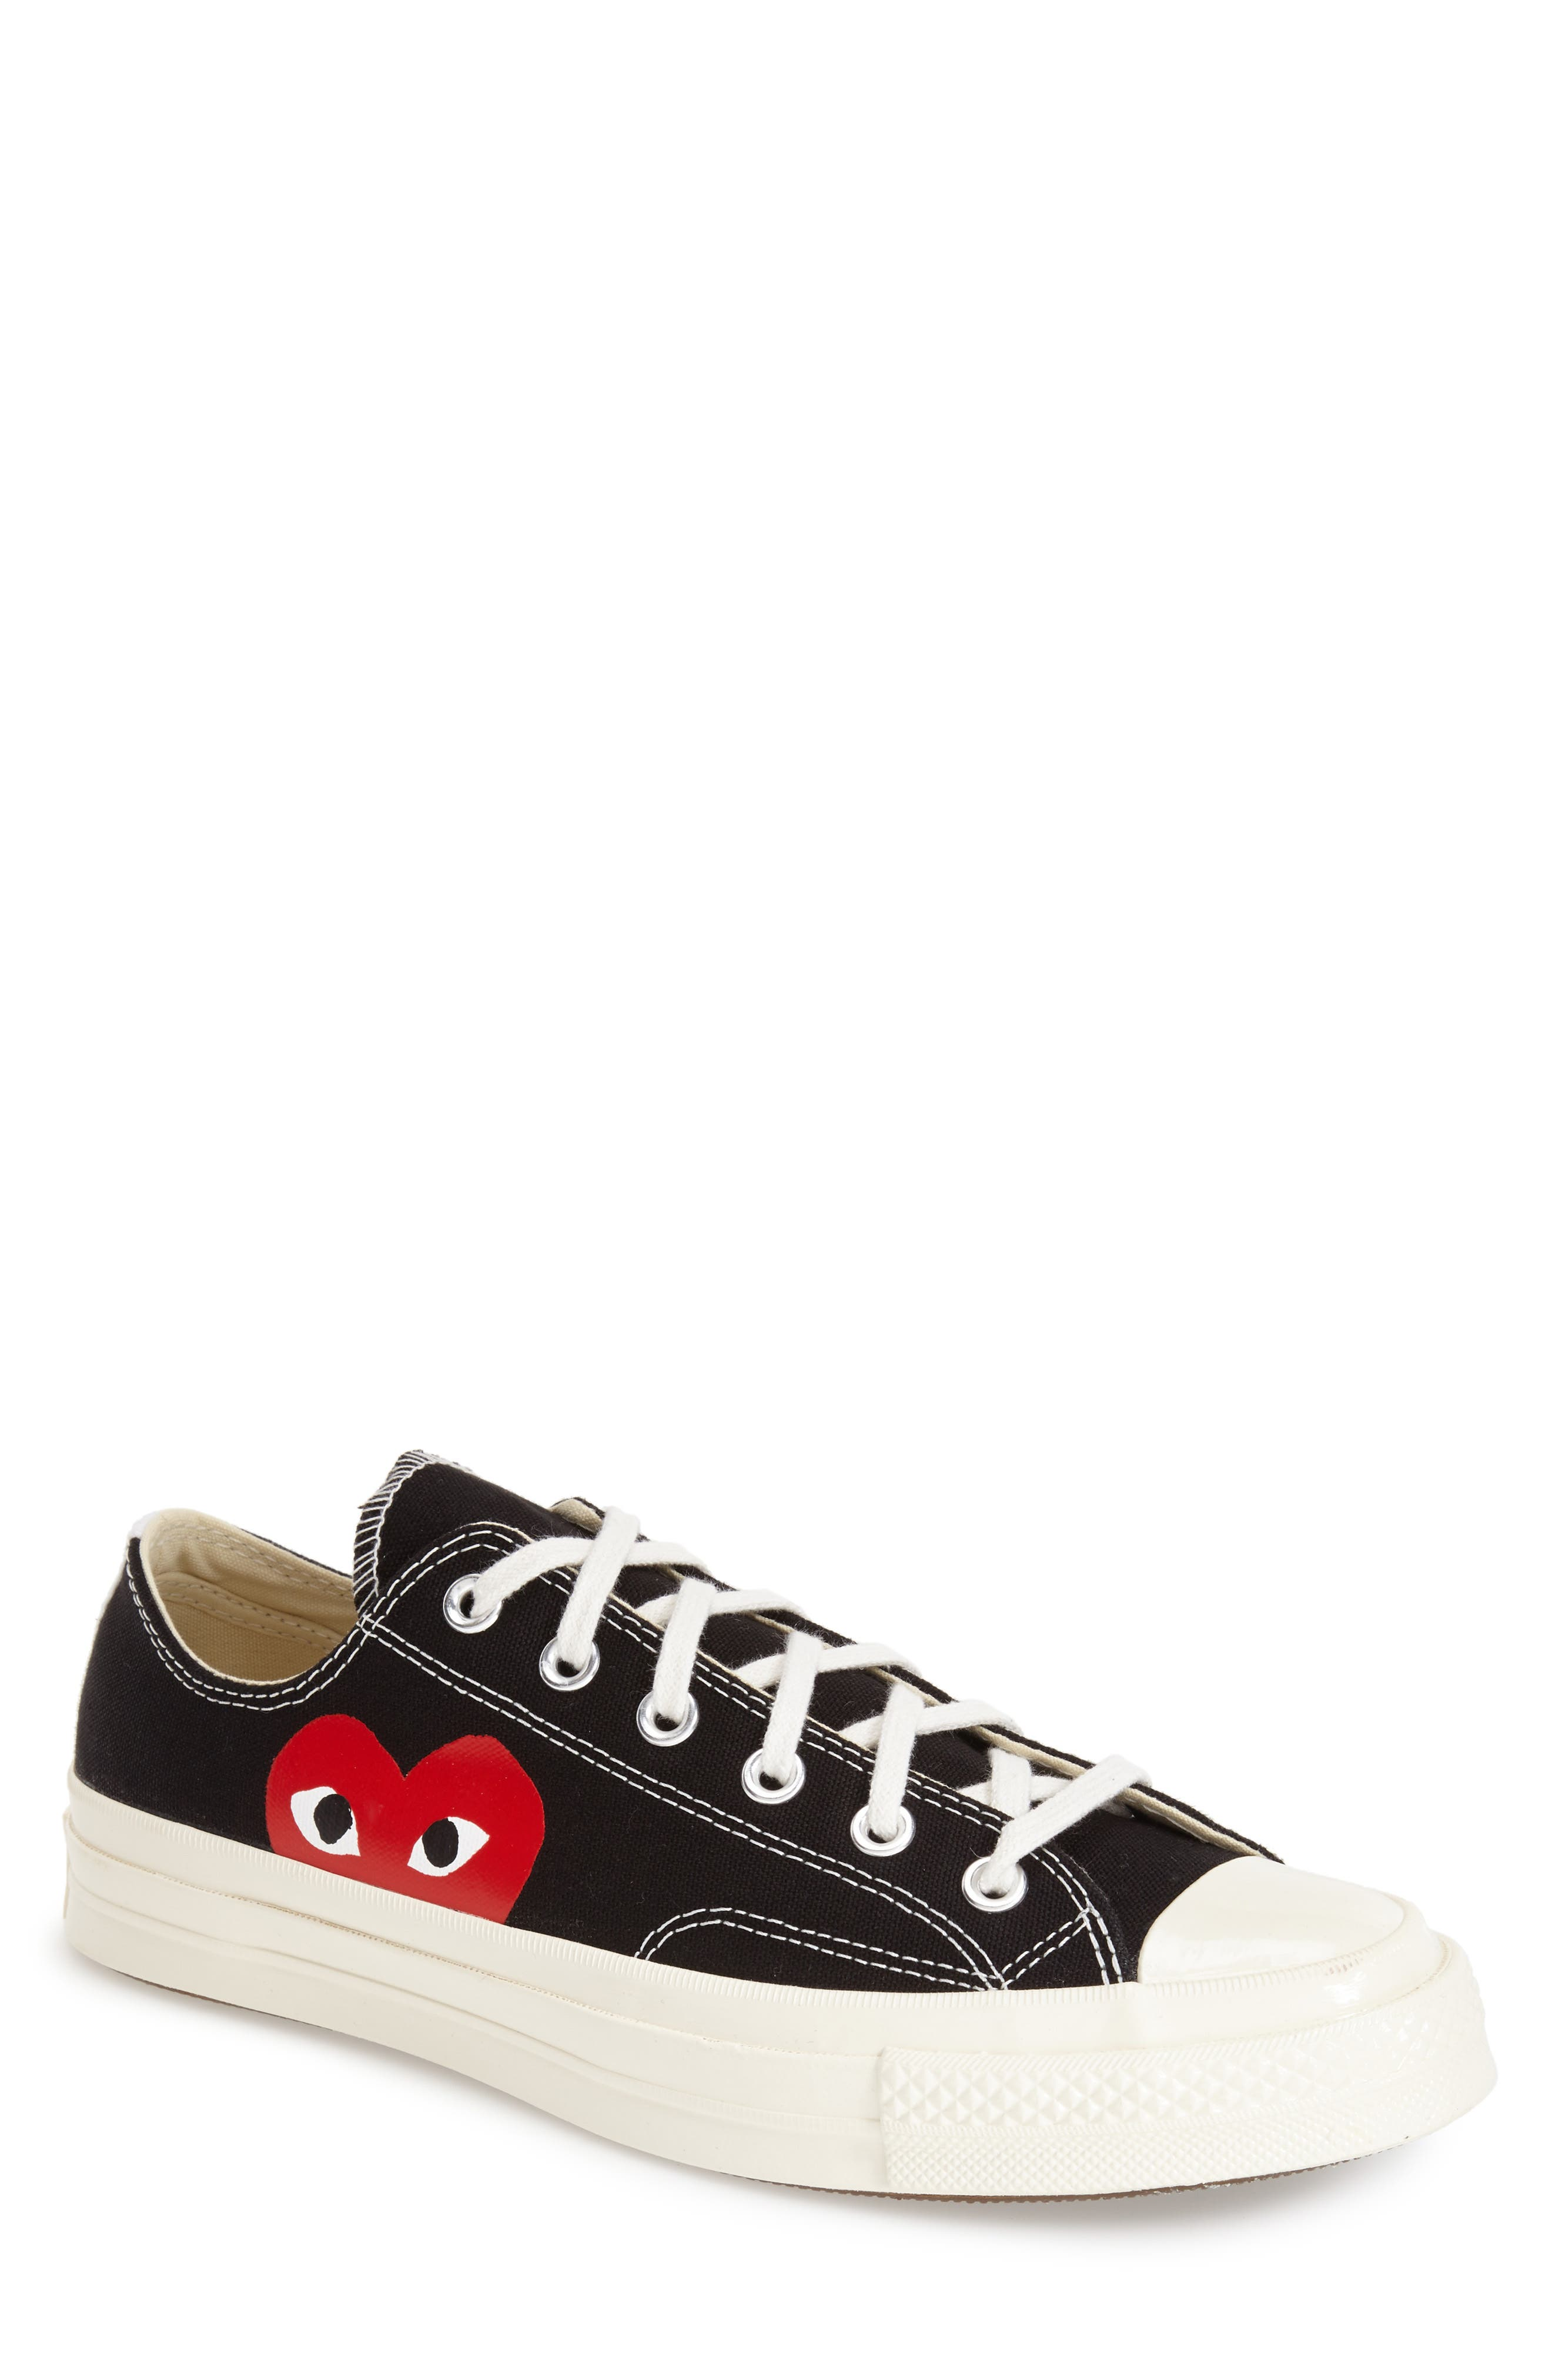 x Converse Chuck Taylor<sup>®</sup> Hidden Heart Low Top Sneaker,                             Alternate thumbnail 4, color,                             BLACK